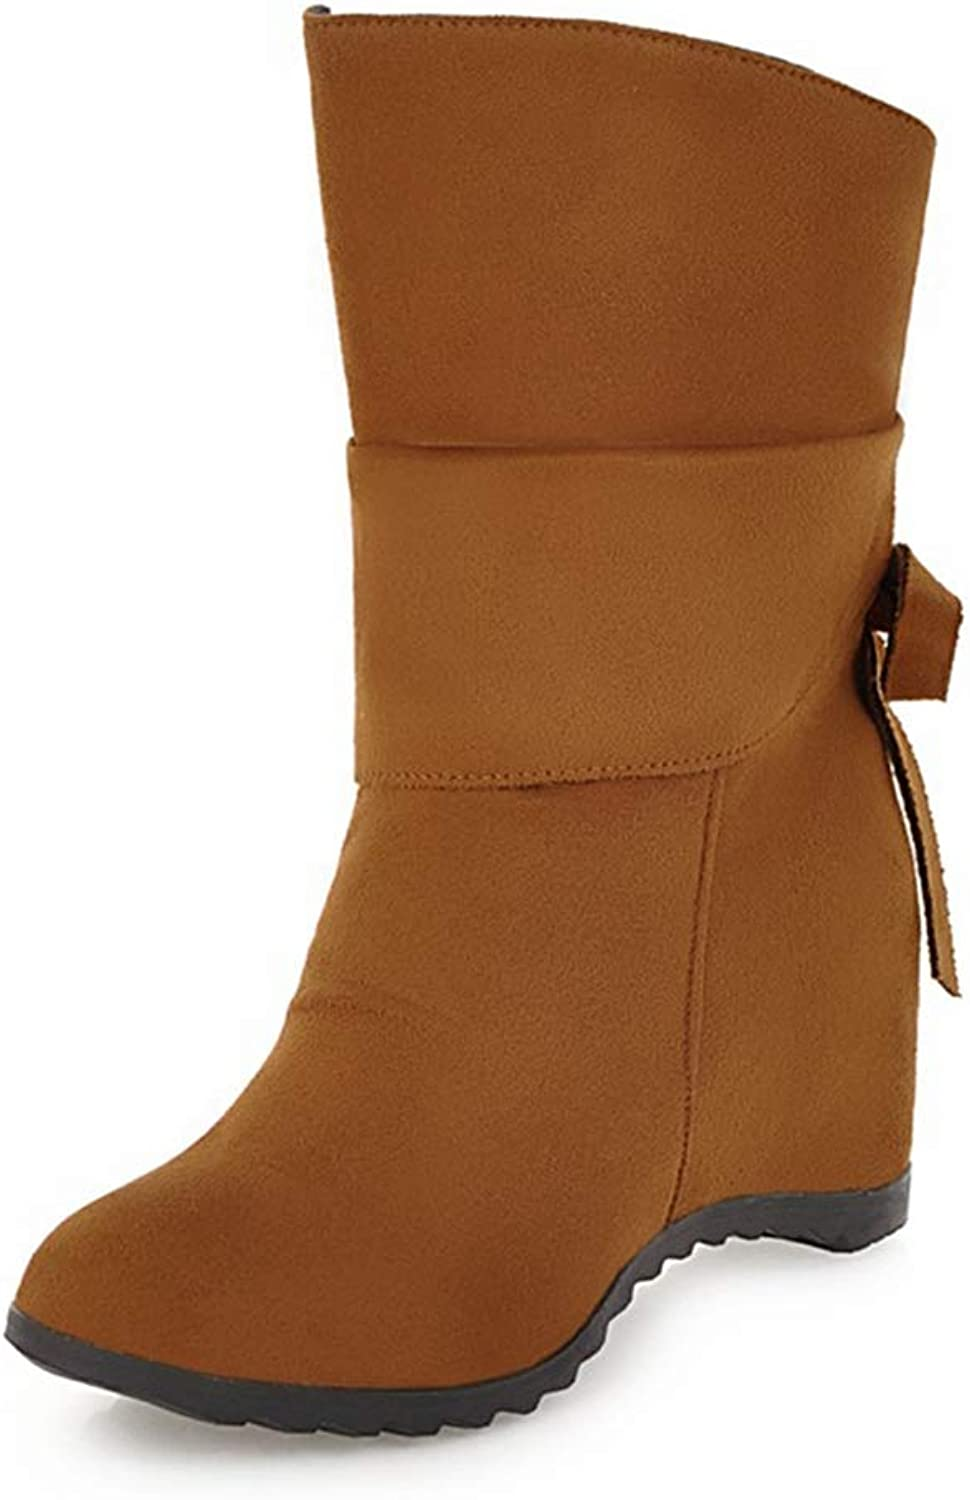 T-JULY Slip On Sweet Bow Tie Increasing Heels Winter shoes Woman Boots shoes Woman Mid Calf Boots New Plus Size 34-43